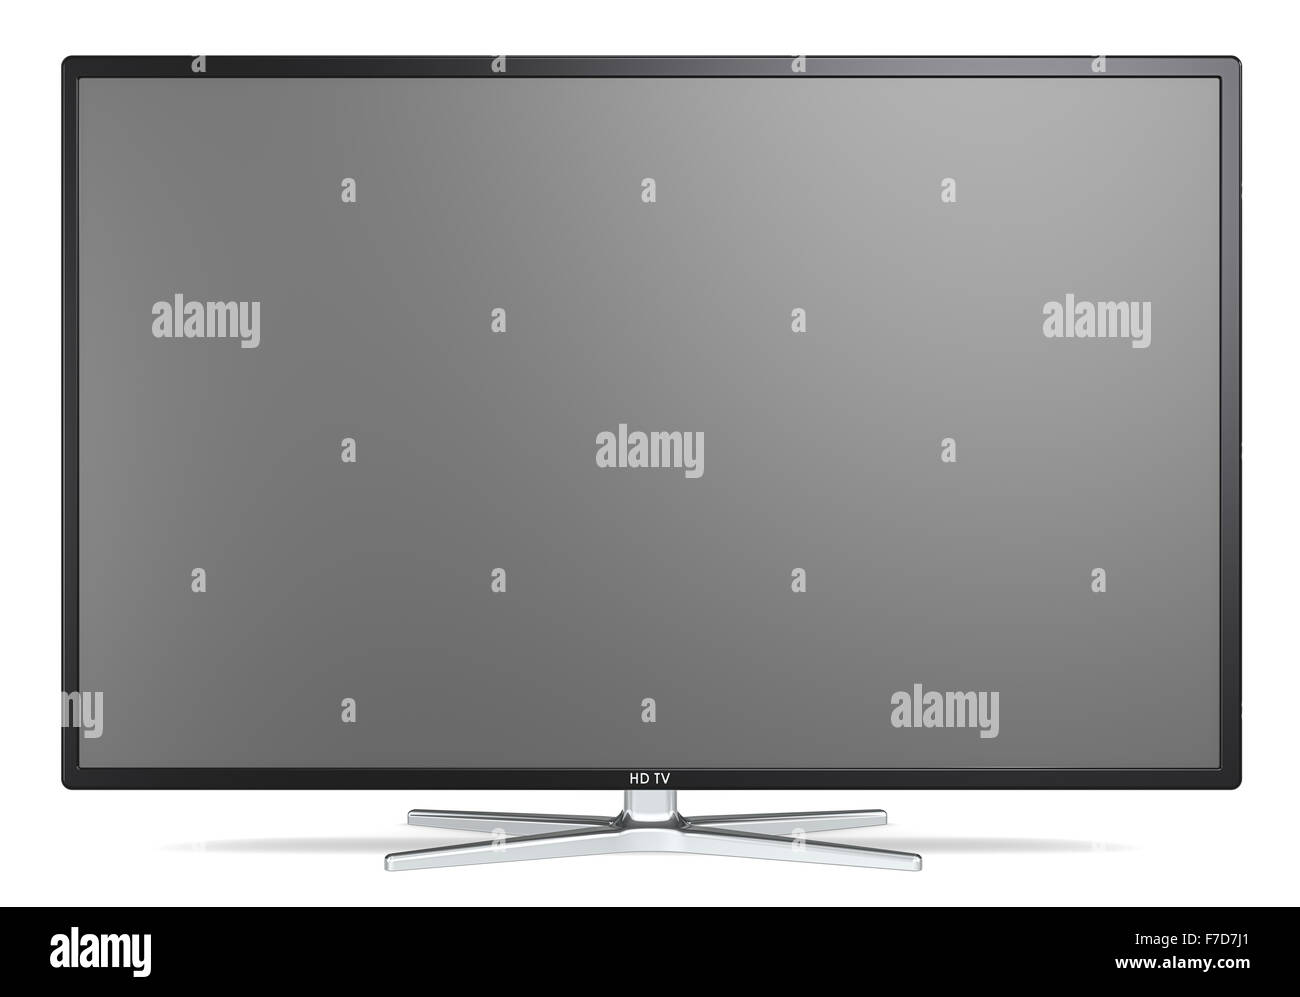 Non branded Widescreen TV on metal stand. Black frame. Blank for copy space. - Stock Image